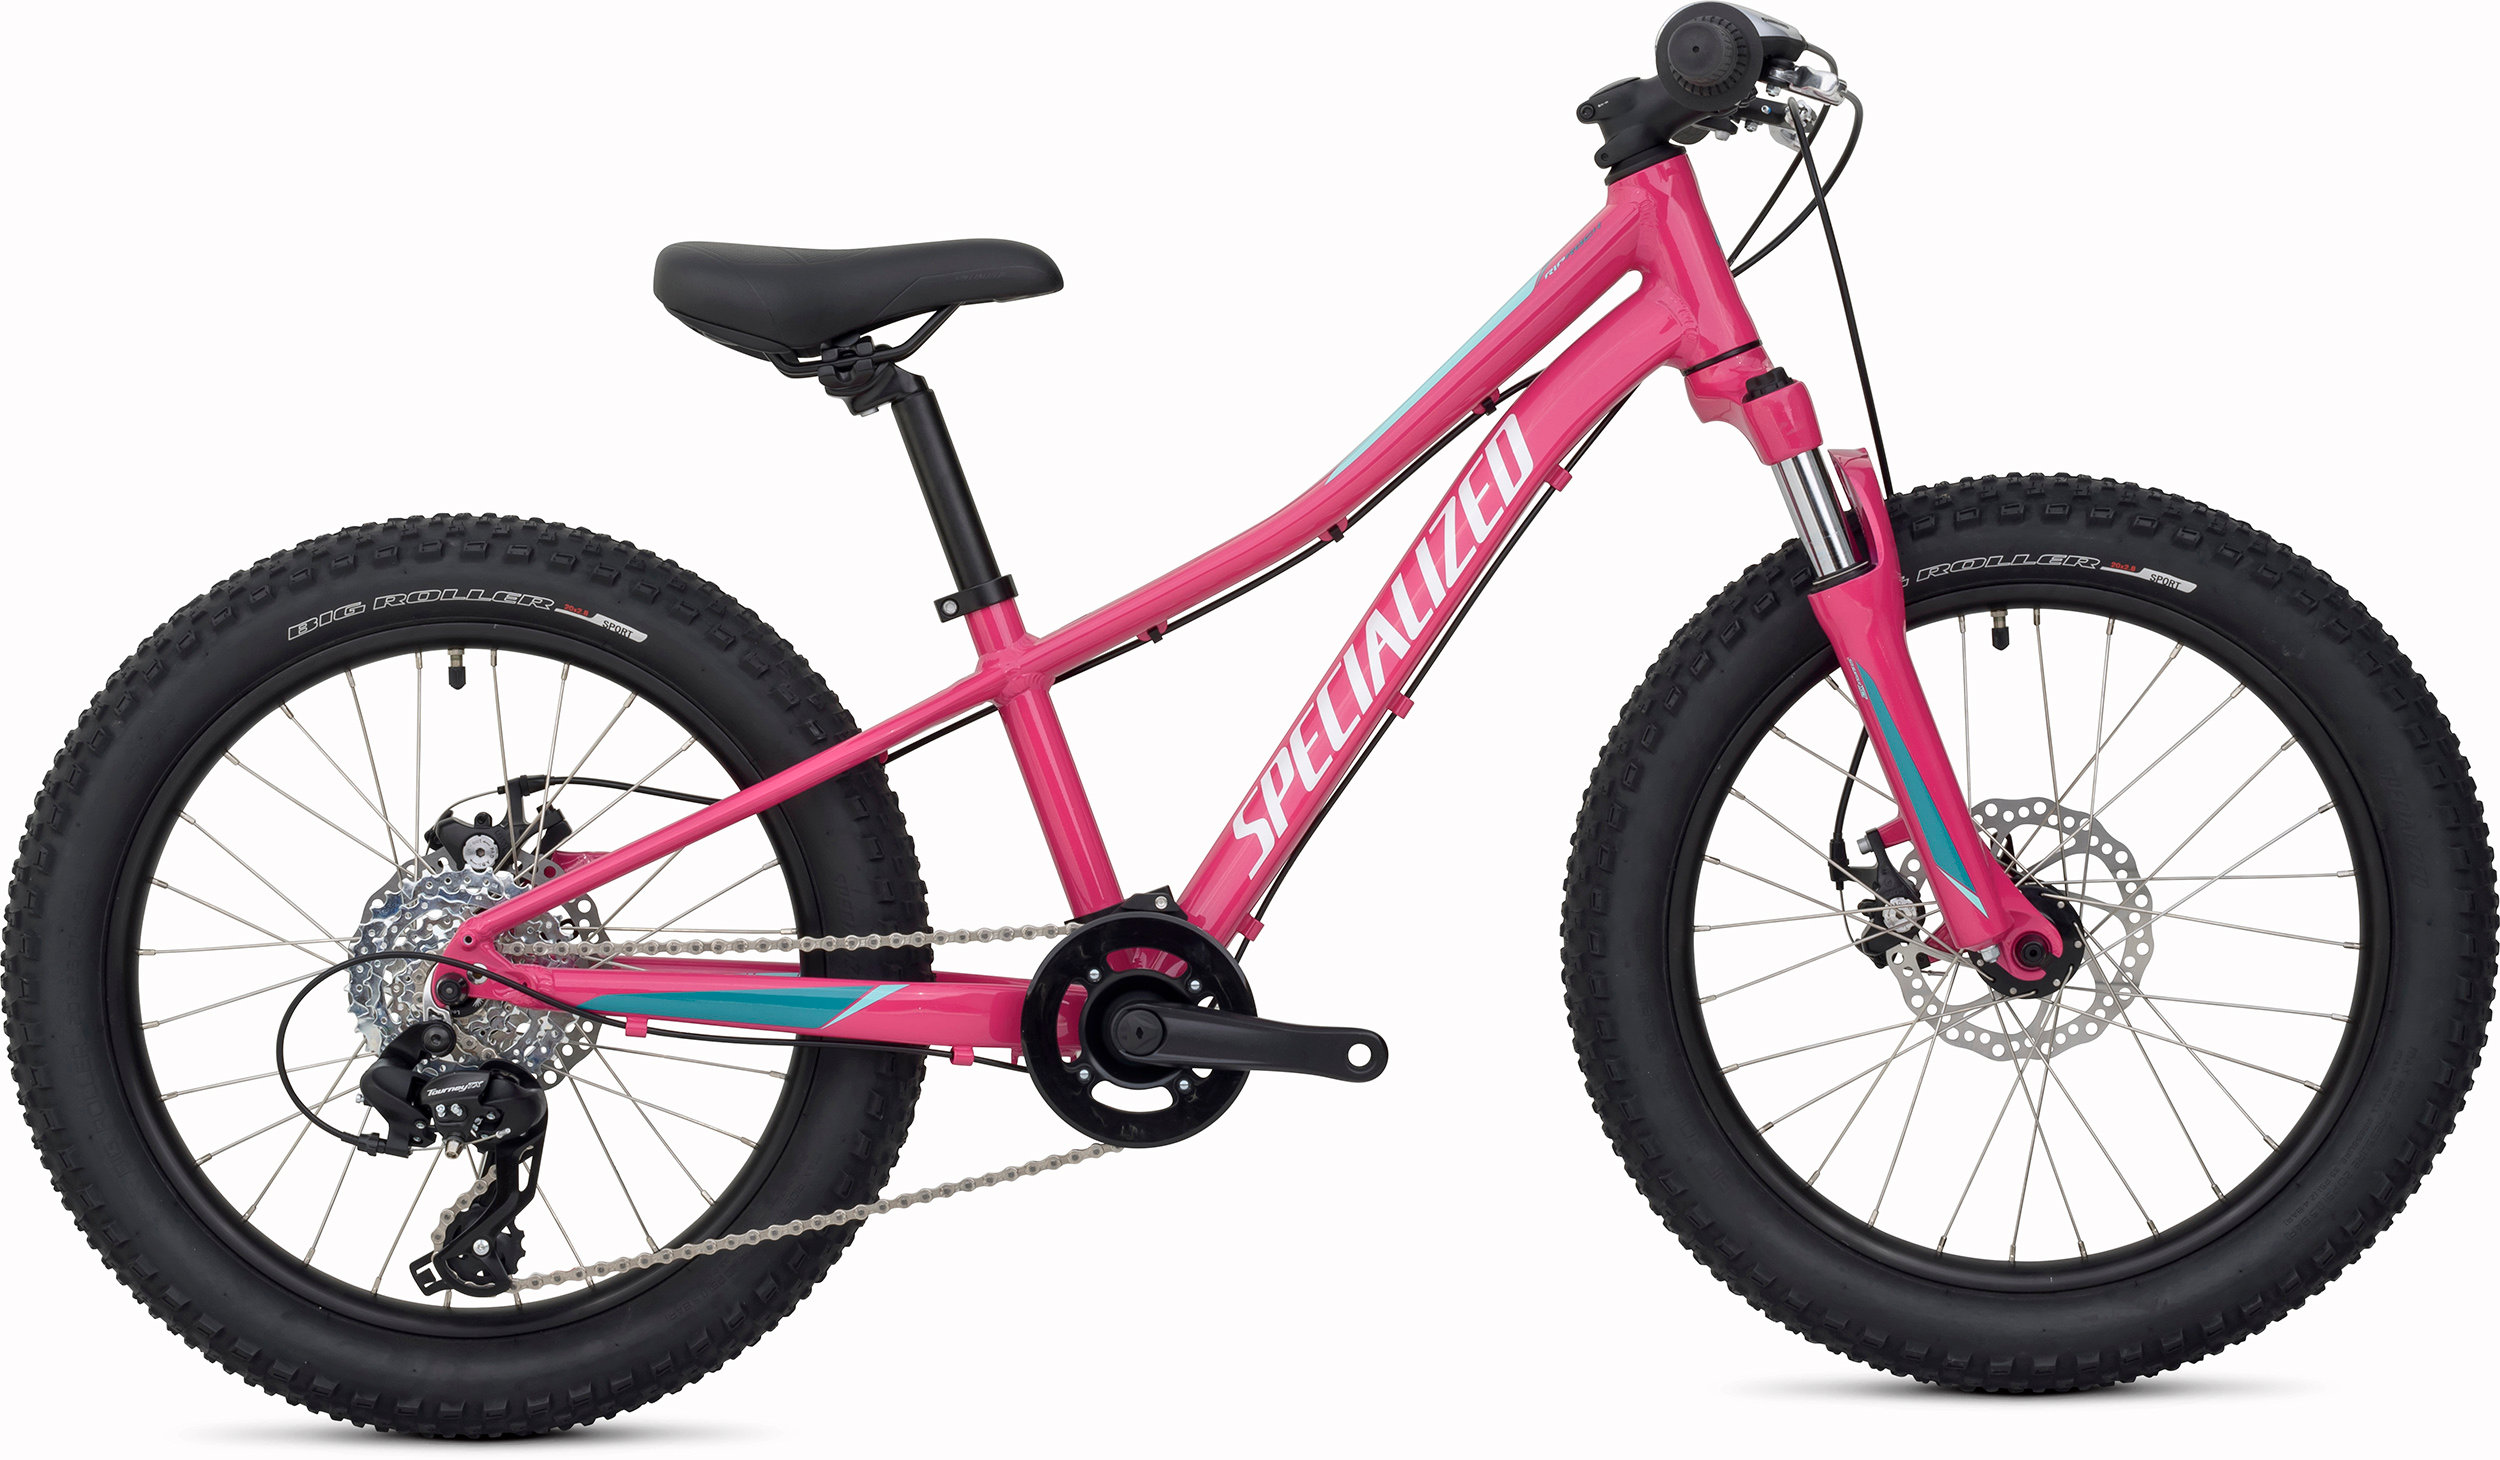 Specialized Riprock 20 Gloss Rainbow Flake Pink/Pearl Turquoise/Pearl Light Turquoise 9 - Alpha Bikes